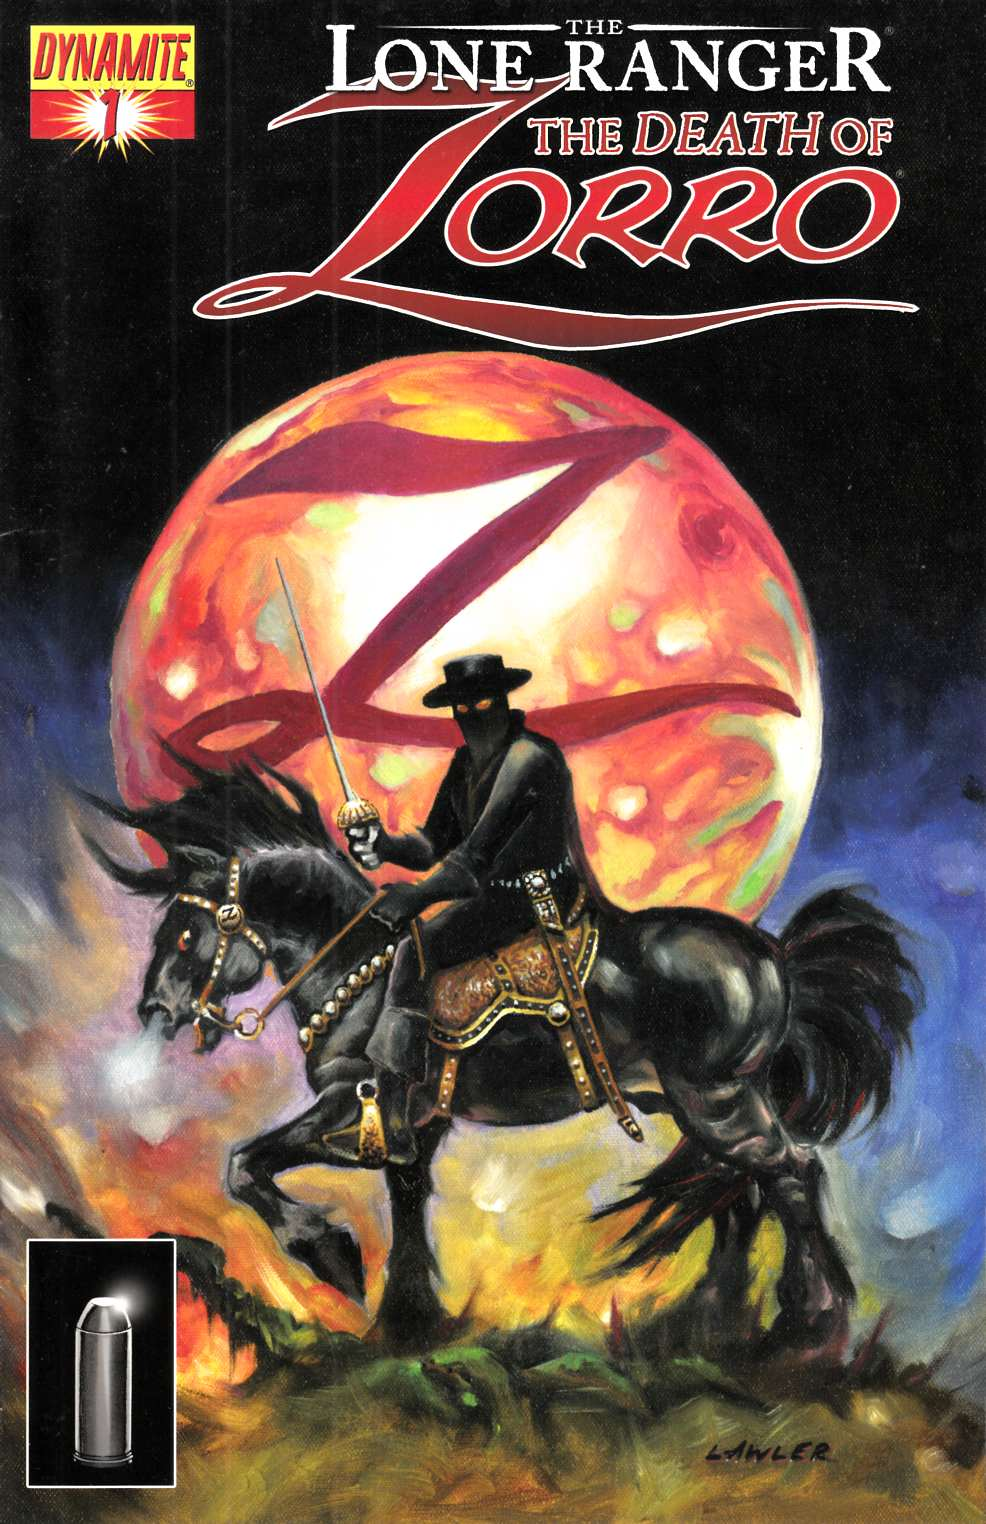 Lone Ranger Death of Zorro #1 Lawler Cover Very Fine (8.0) [Dynamite Comic] THUMBNAIL